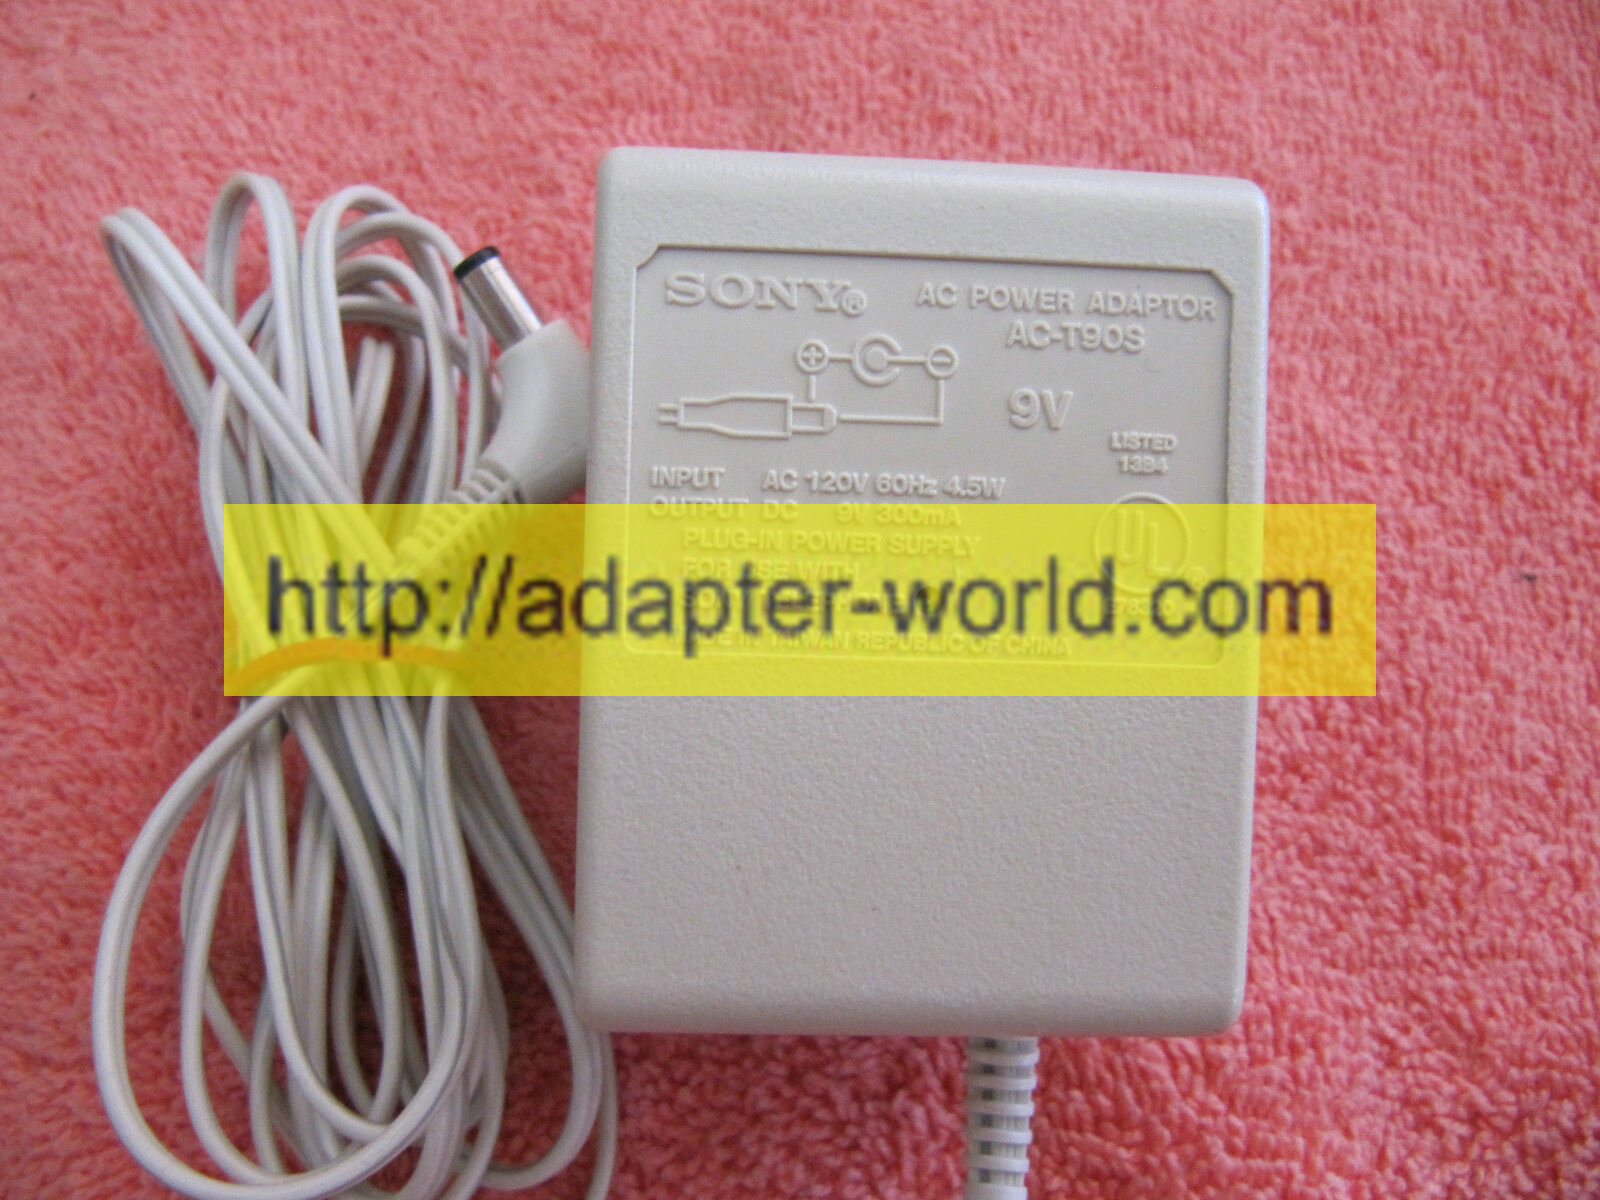 100% Brand NEW* SONY AC-T90S 9V AC Power Supply Adapter [*100% Brand